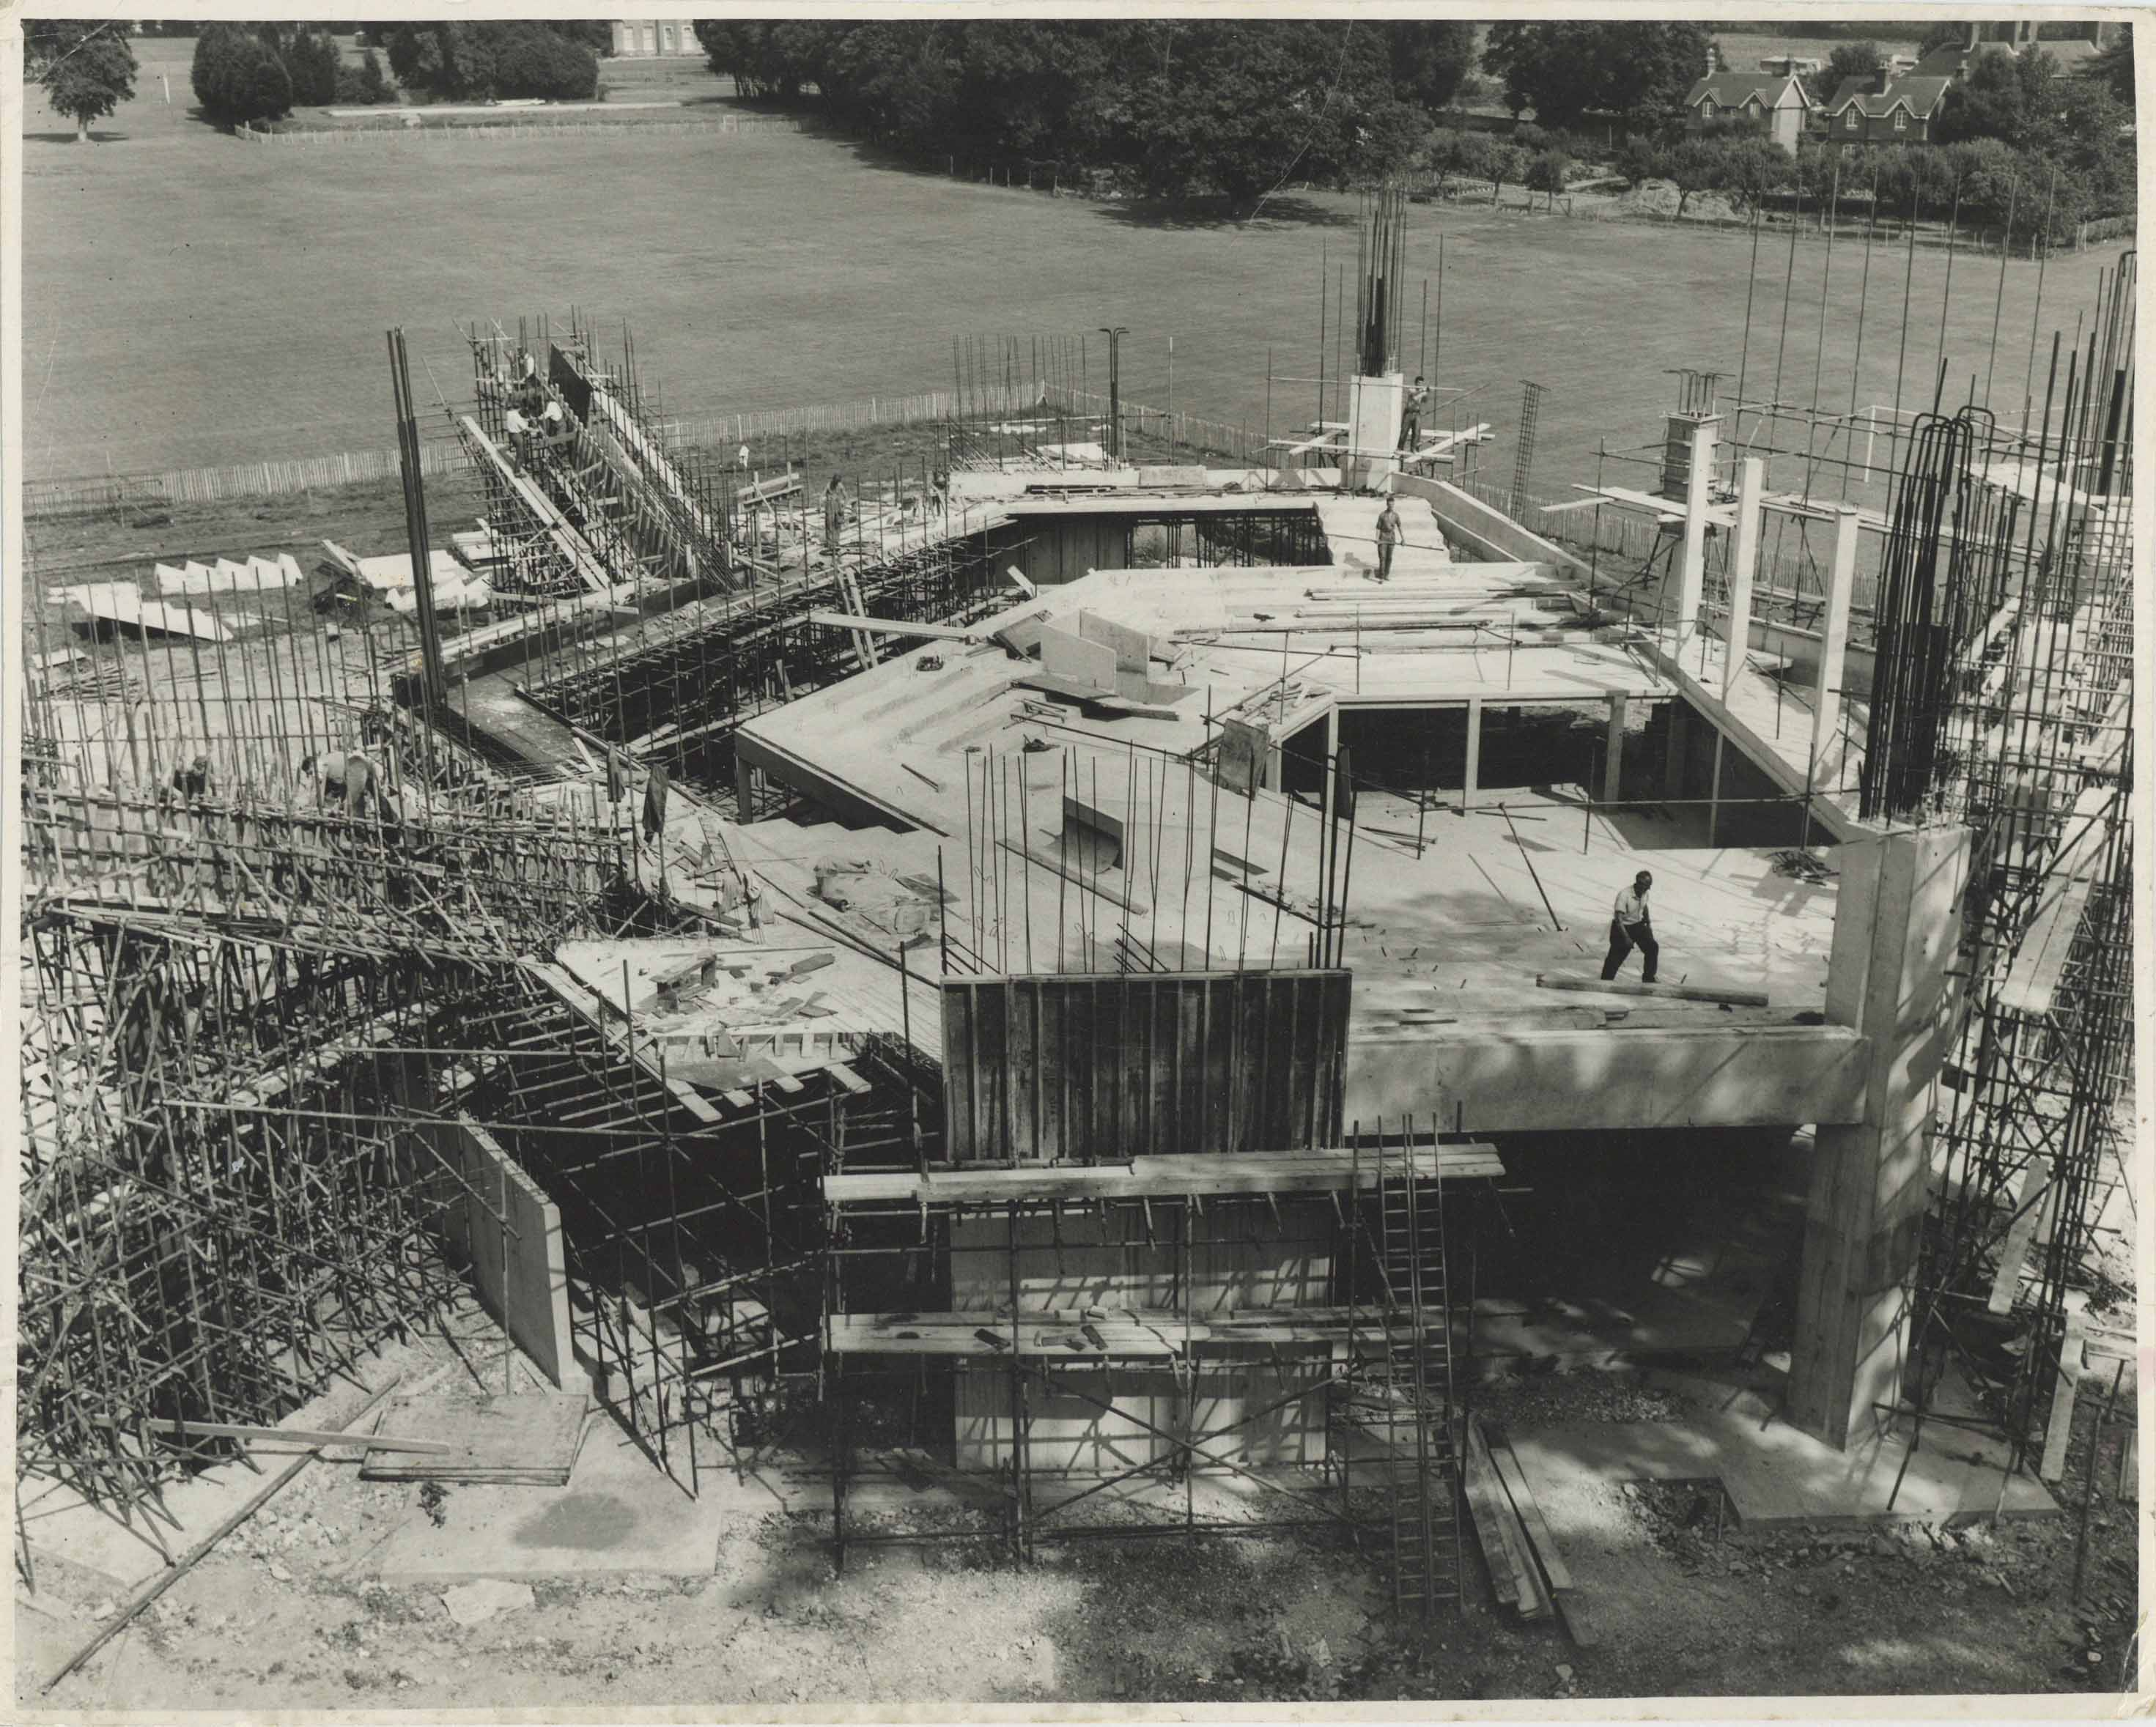 Photograph Construction Aerial Exterior Festival Theatre - Photographer unknown - 1960s - Box 71 CFT WSRO